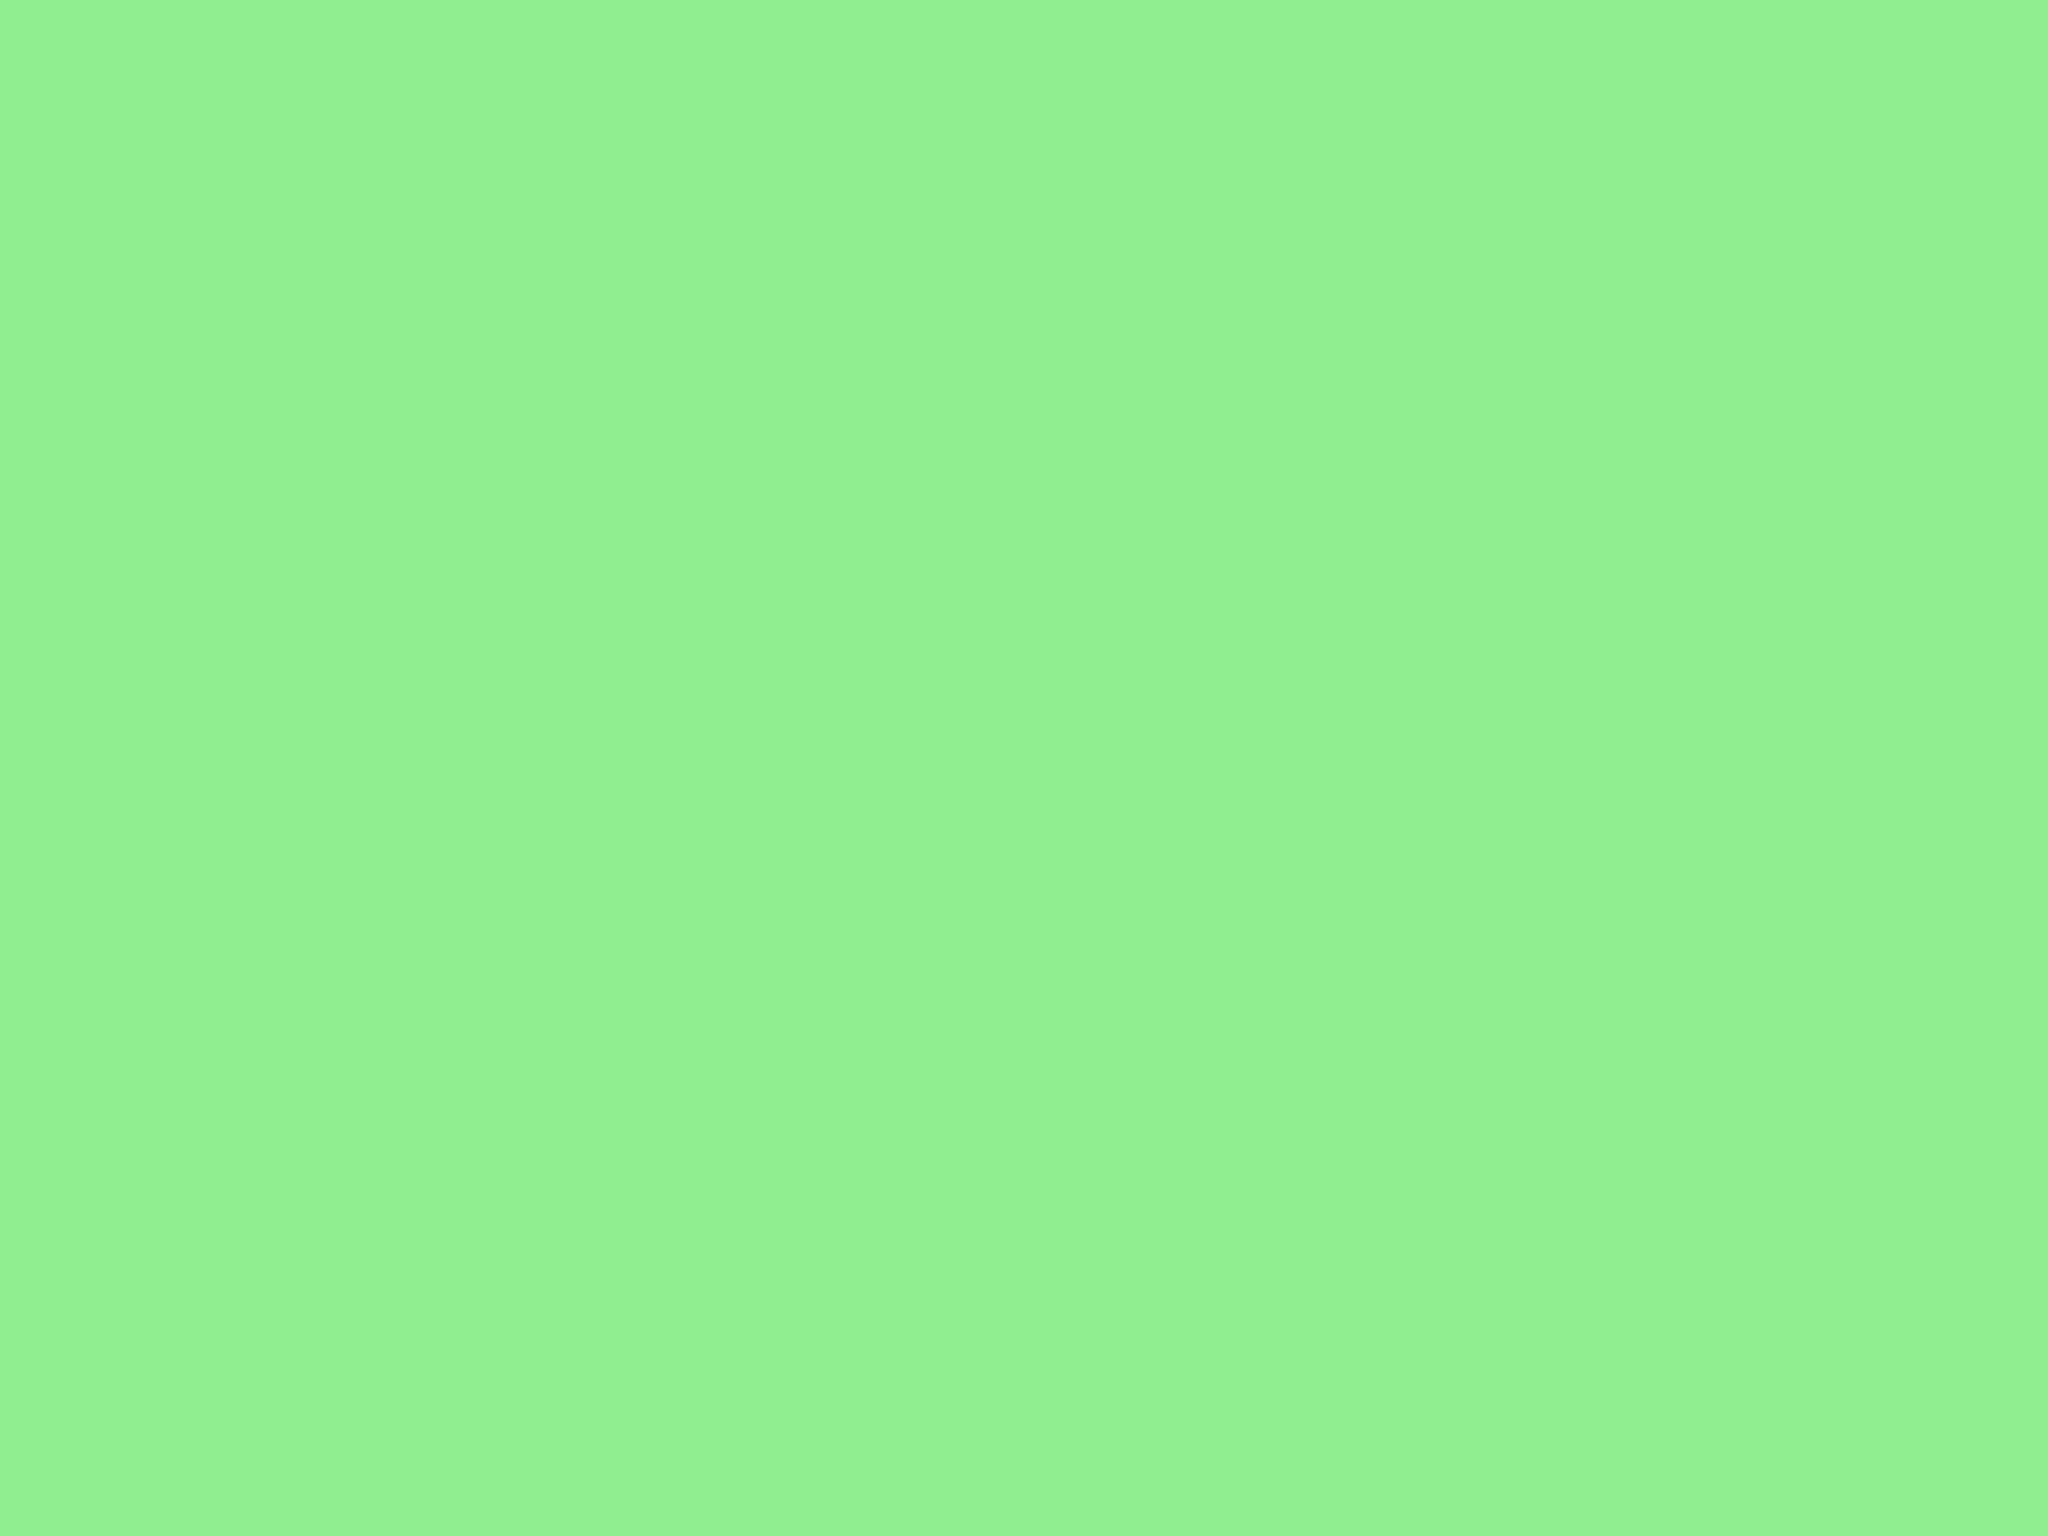 2048x1536 Light Green Solid Color Background